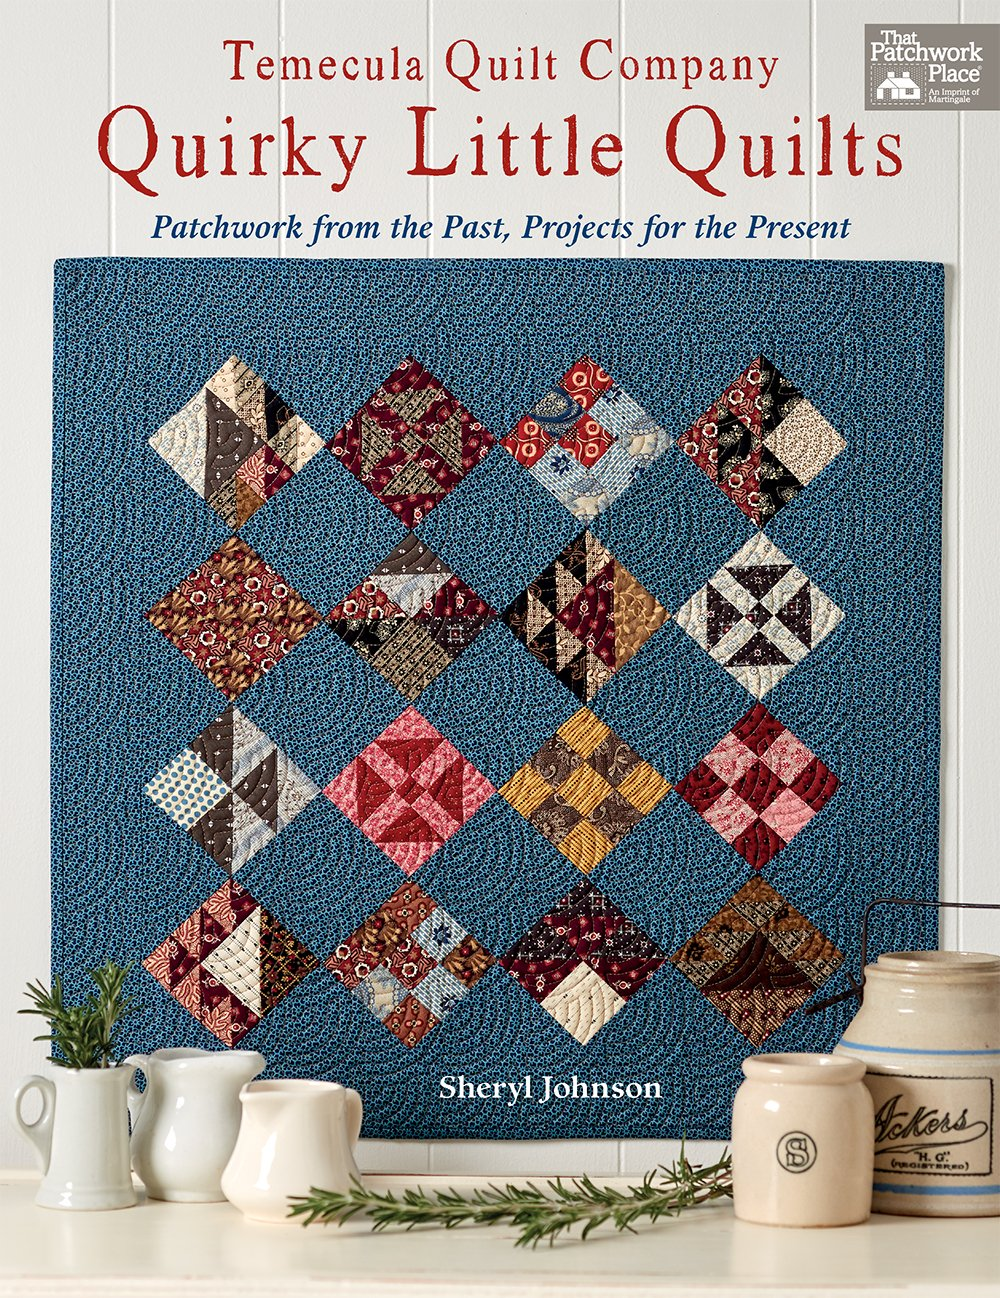 Temecula Quilt Company - Quirky Little Quilts: Patchwork from the Past, Projects for the Present